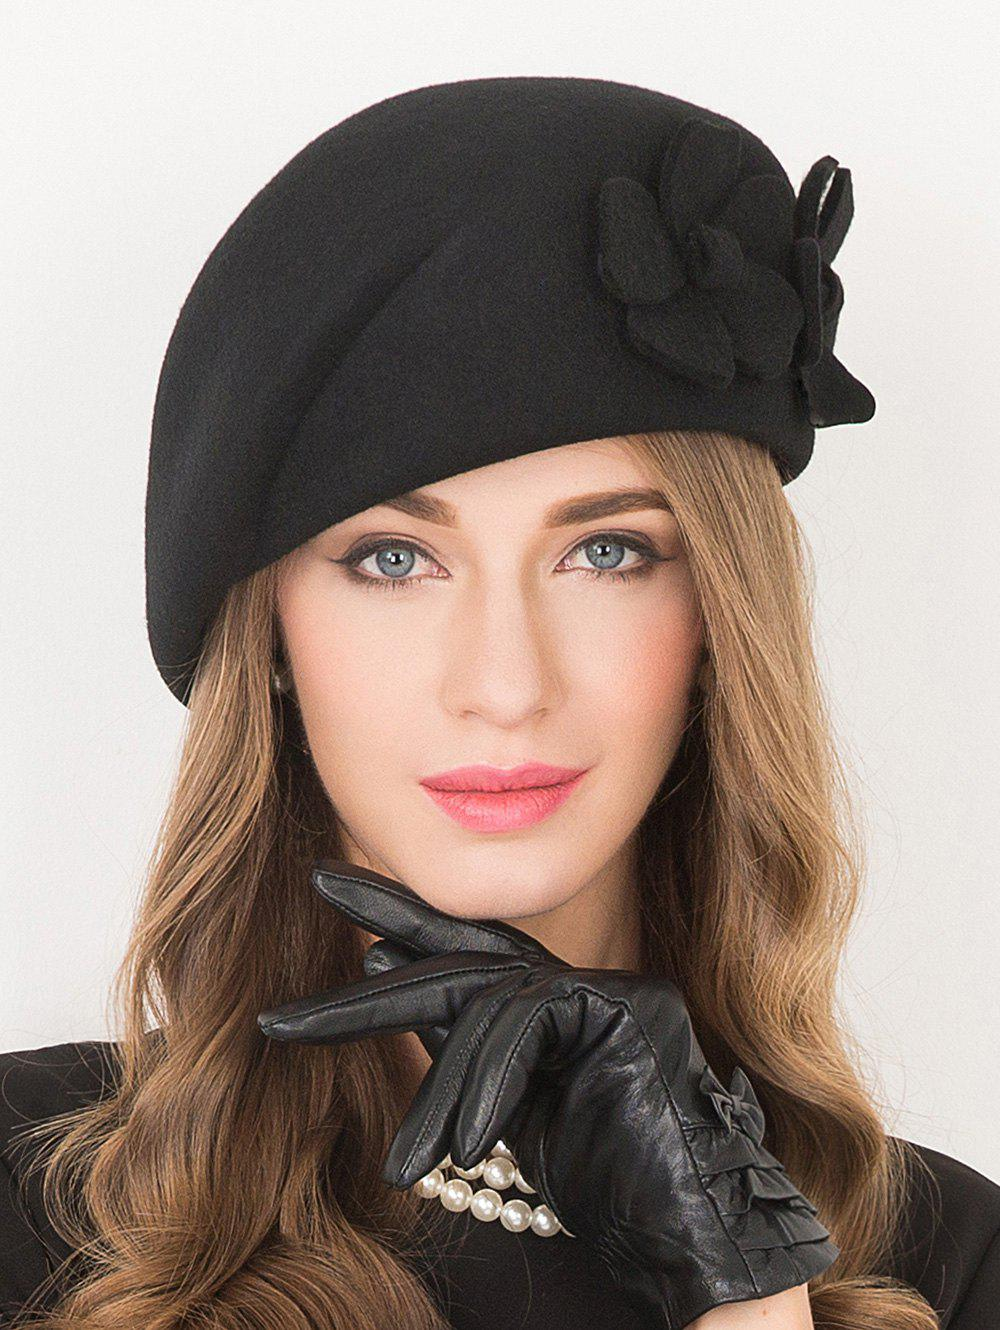 Flower Applique Embellished Wool French BeretACCESSORIES<br><br>Color: BLACK; Hat Type: Beret; Group: Adult; Gender: For Women; Style: Fashion; Pattern Type: Solid; Material: Wool; Circumference (CM): 57CM; Weight: 1.529kg; Package Contents: 1 x Hat;